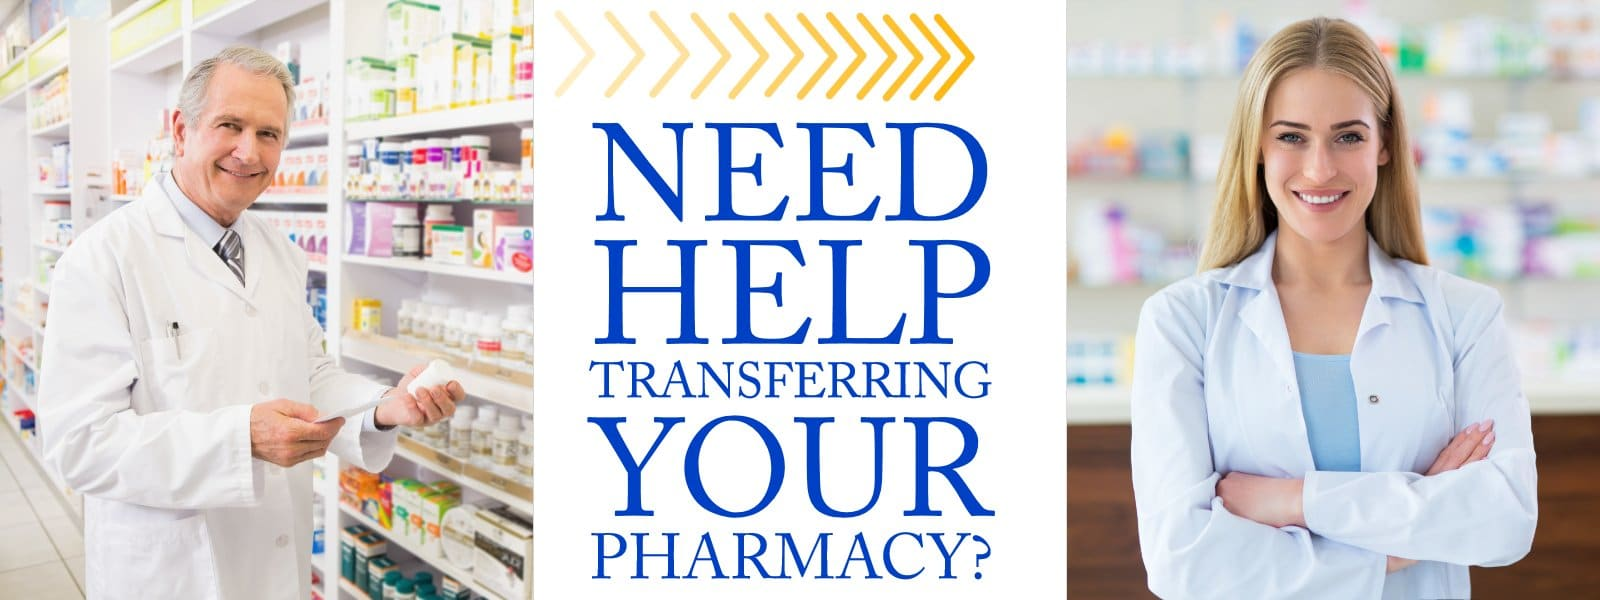 pharmacy ownership, independent pharmacy ownership, pharmacy transfer services, pharmacy ownership transfer, pharmacy transfer consulting